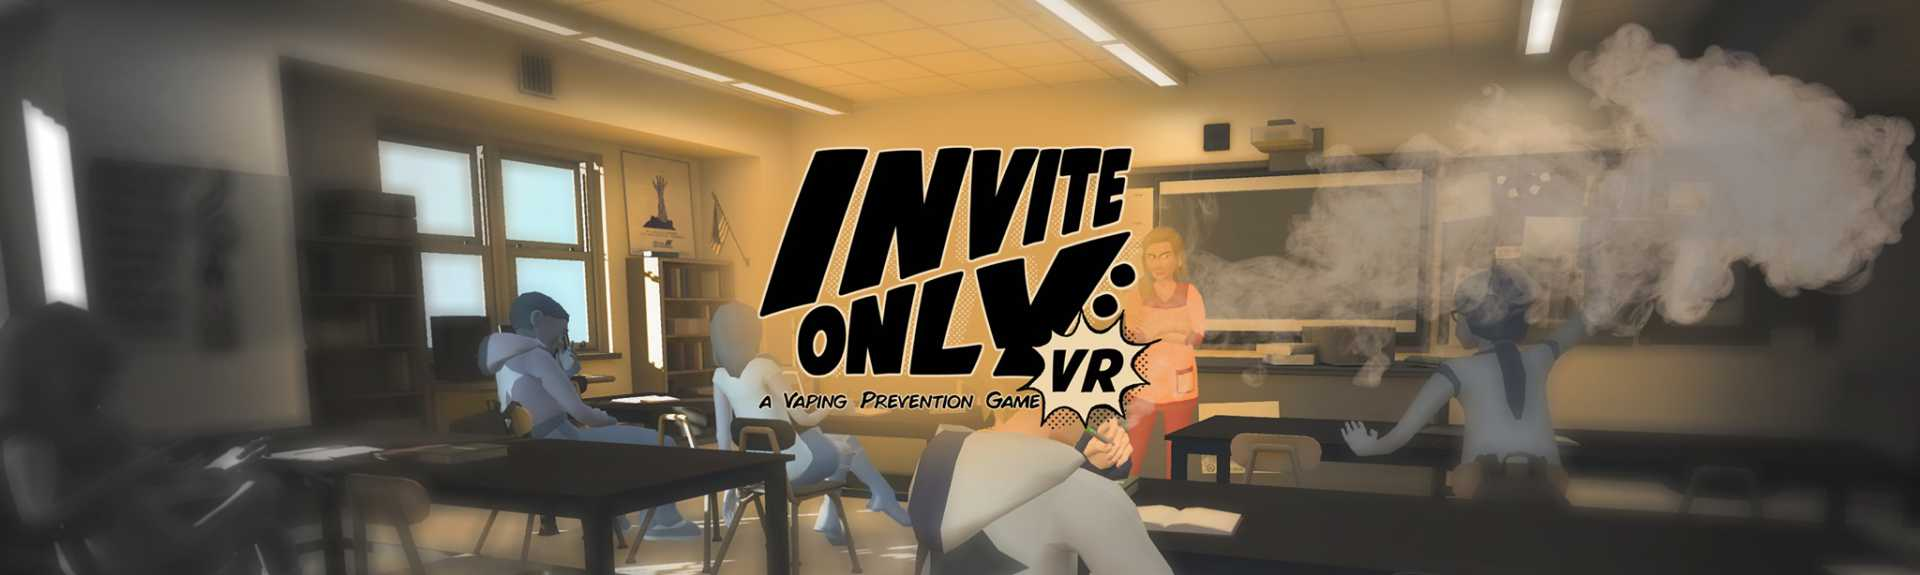 Invite Only VR: A Vaping Prevention Game